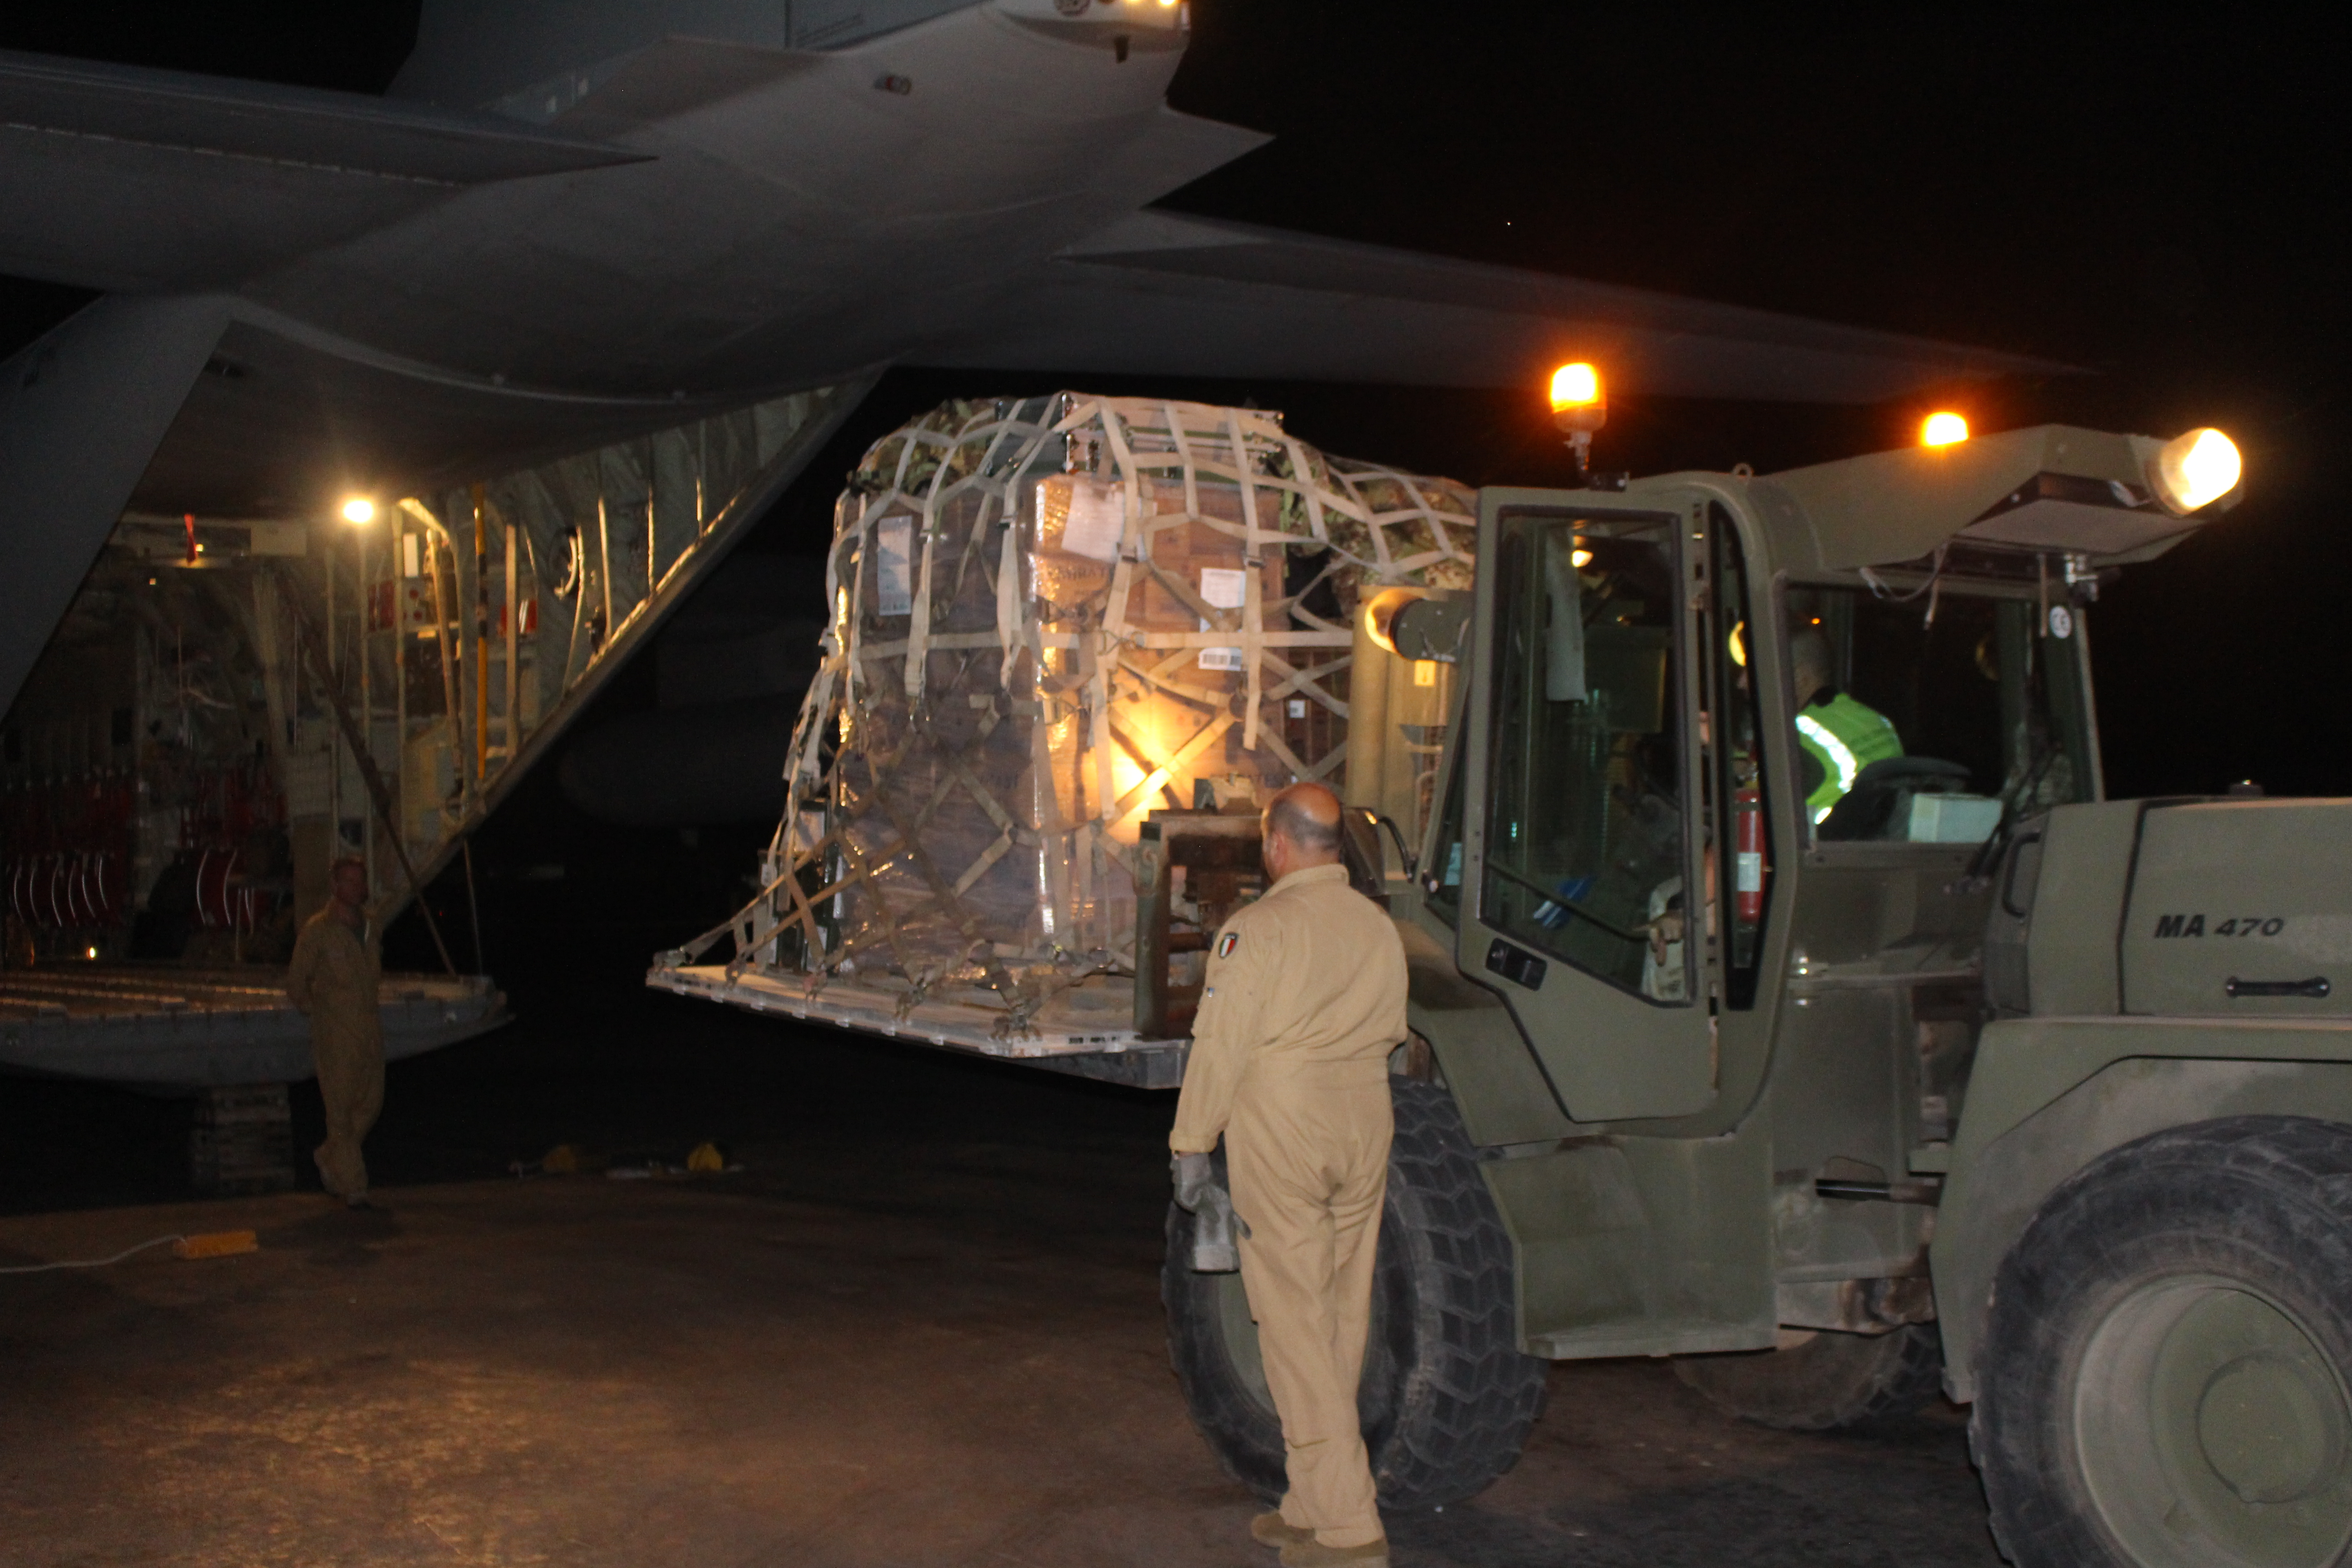 Members of the Italian Army load cargo for an Air Transportation and Refueling Exchange of Service (ATARES) proof-of-concept mission out of Djibouti, Africa, June 6, 2017. (Photo courtesy of Italian Army member Gennaro de Gennaro/Released)